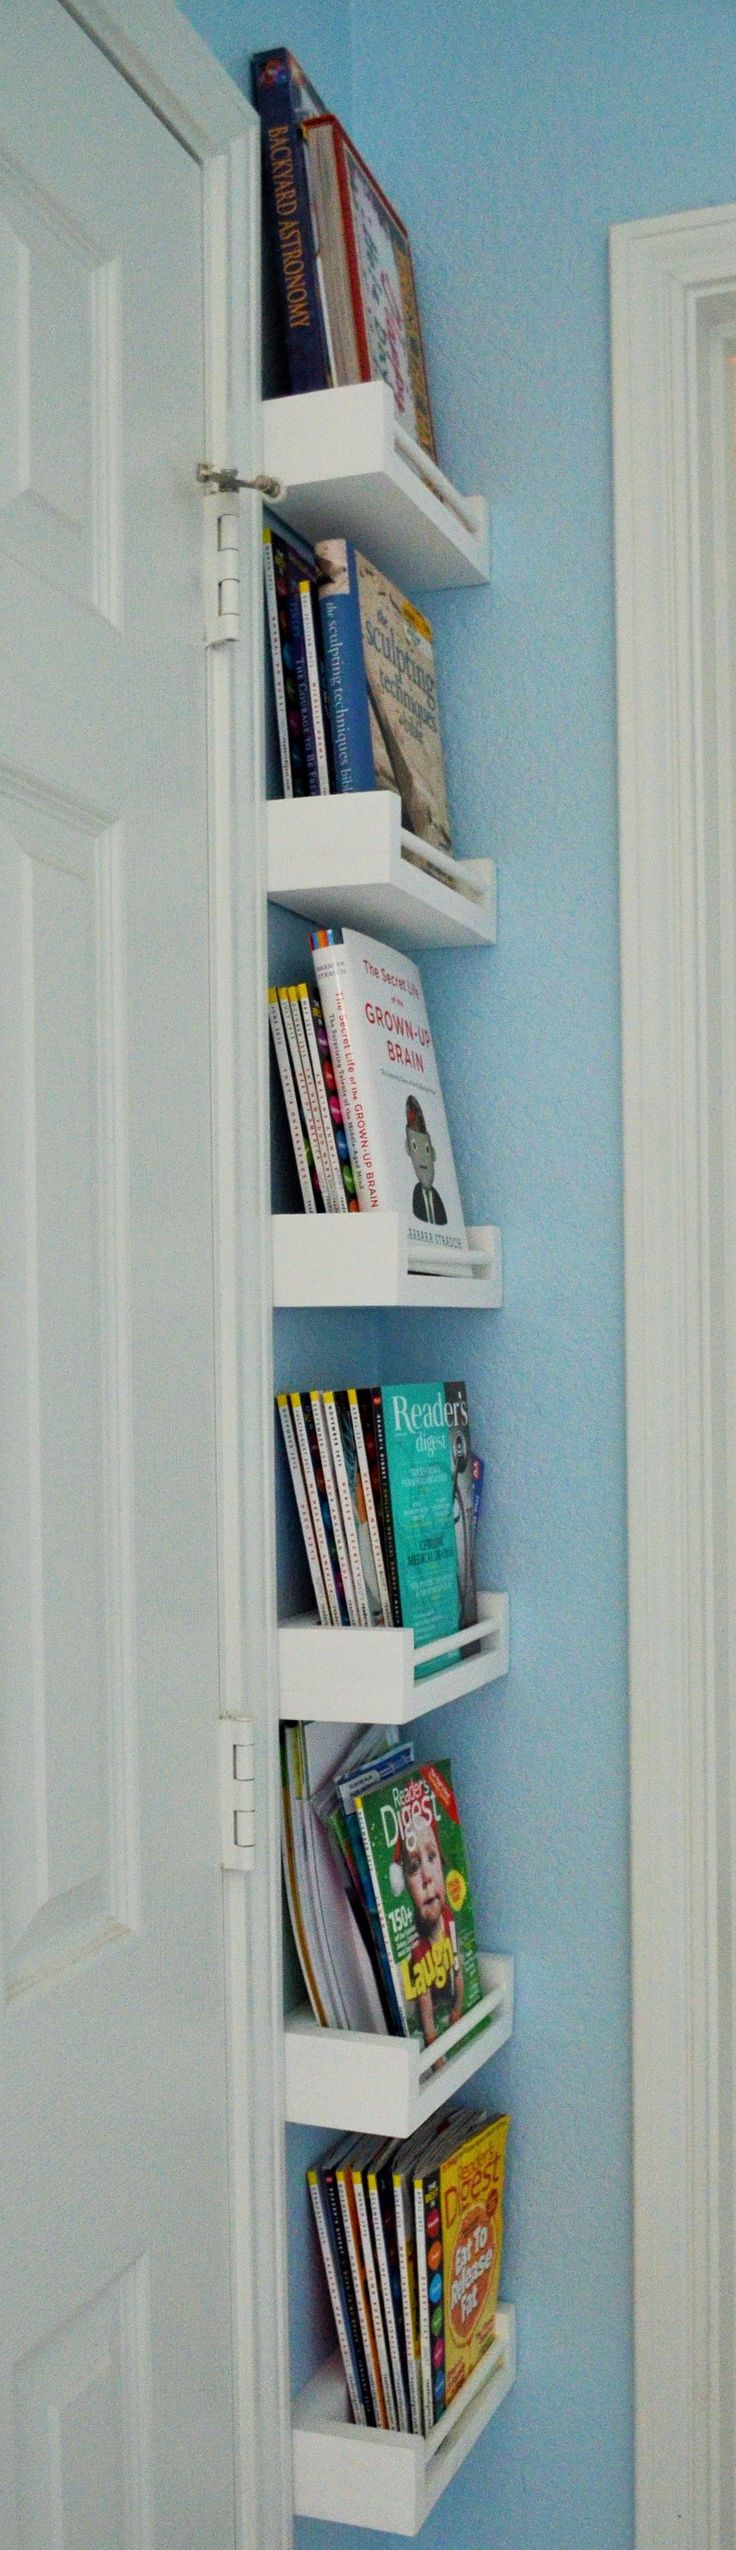 small corner shelving